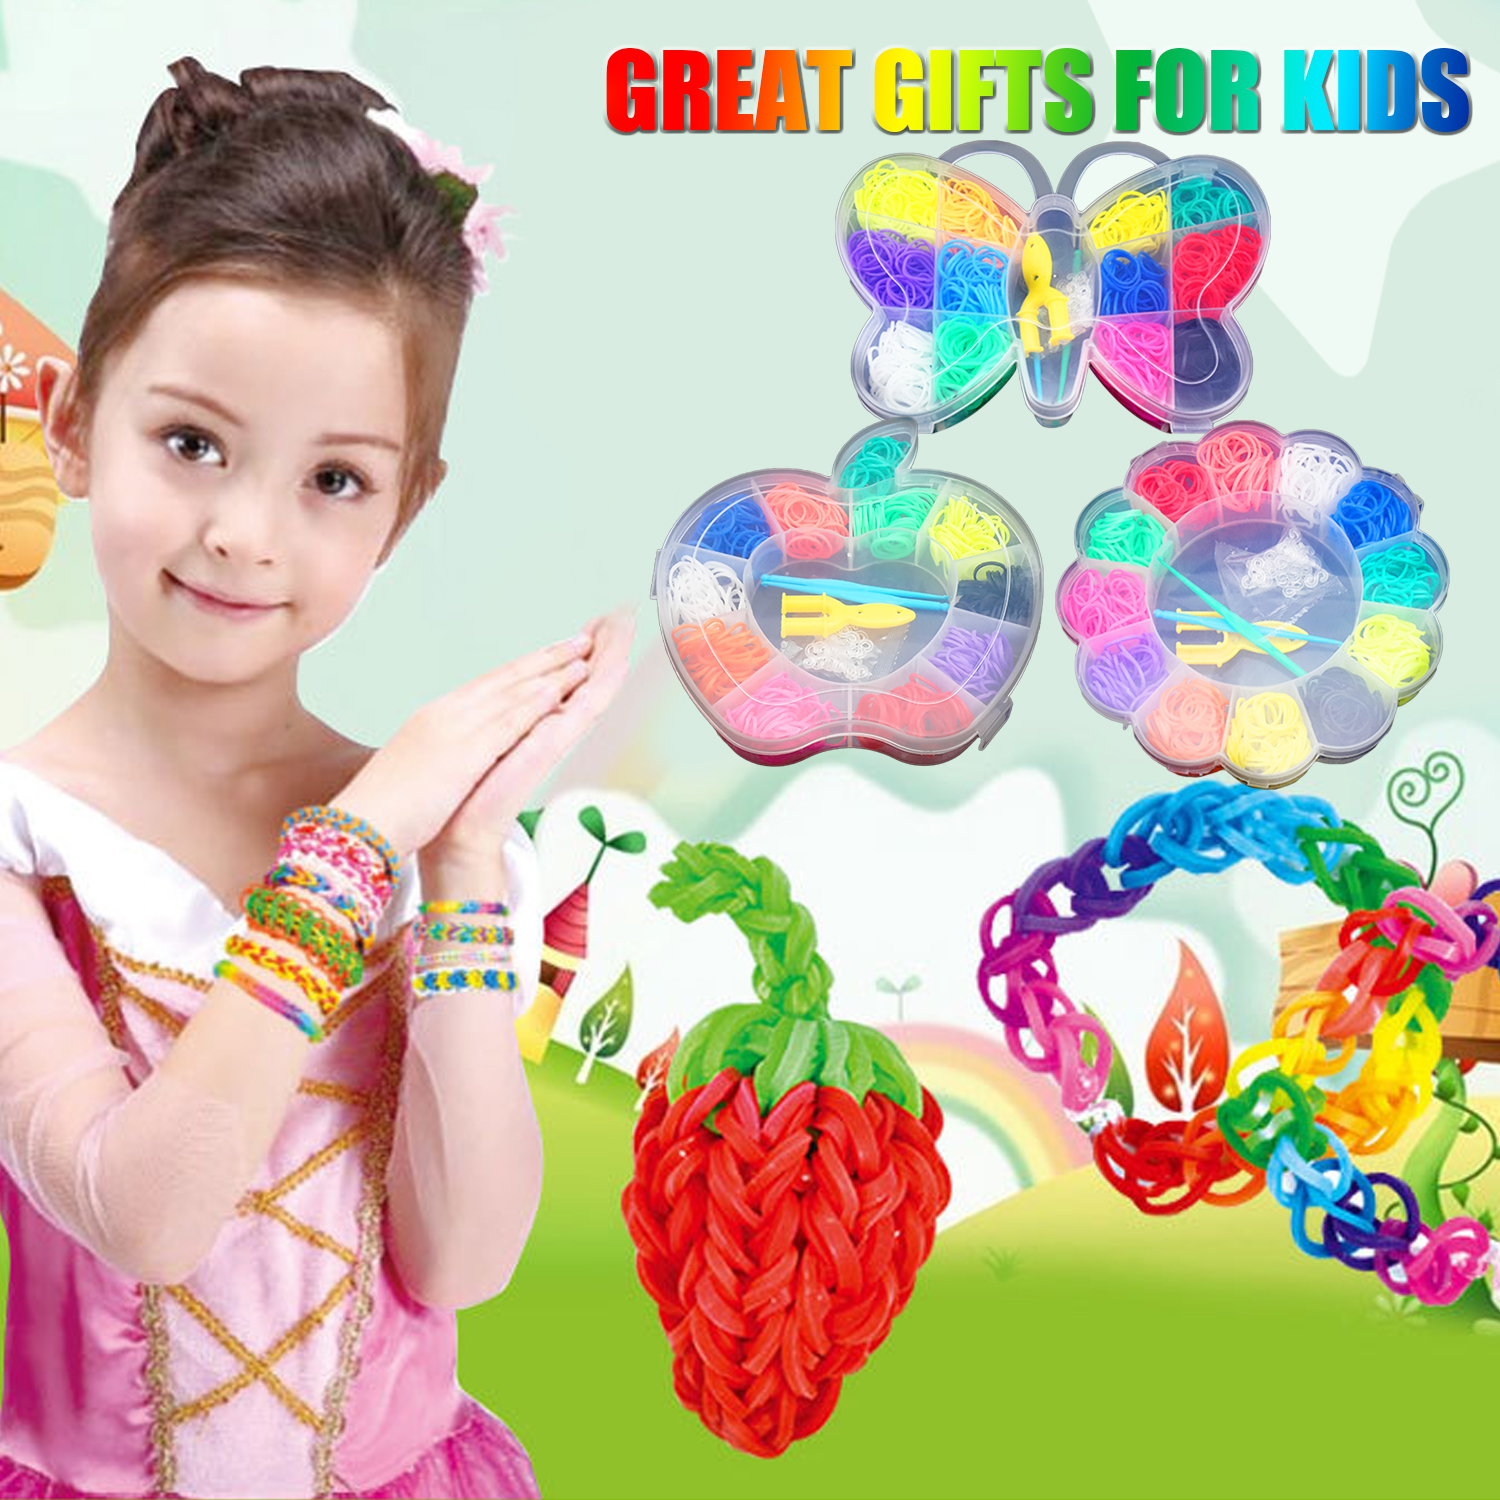 Kids Colorful Rubber Loom Bands DIY Toy 600pcs Loom Bands Refill Kit With Tools Rubber Band Weaving Making Rainbow Bracelet Toy